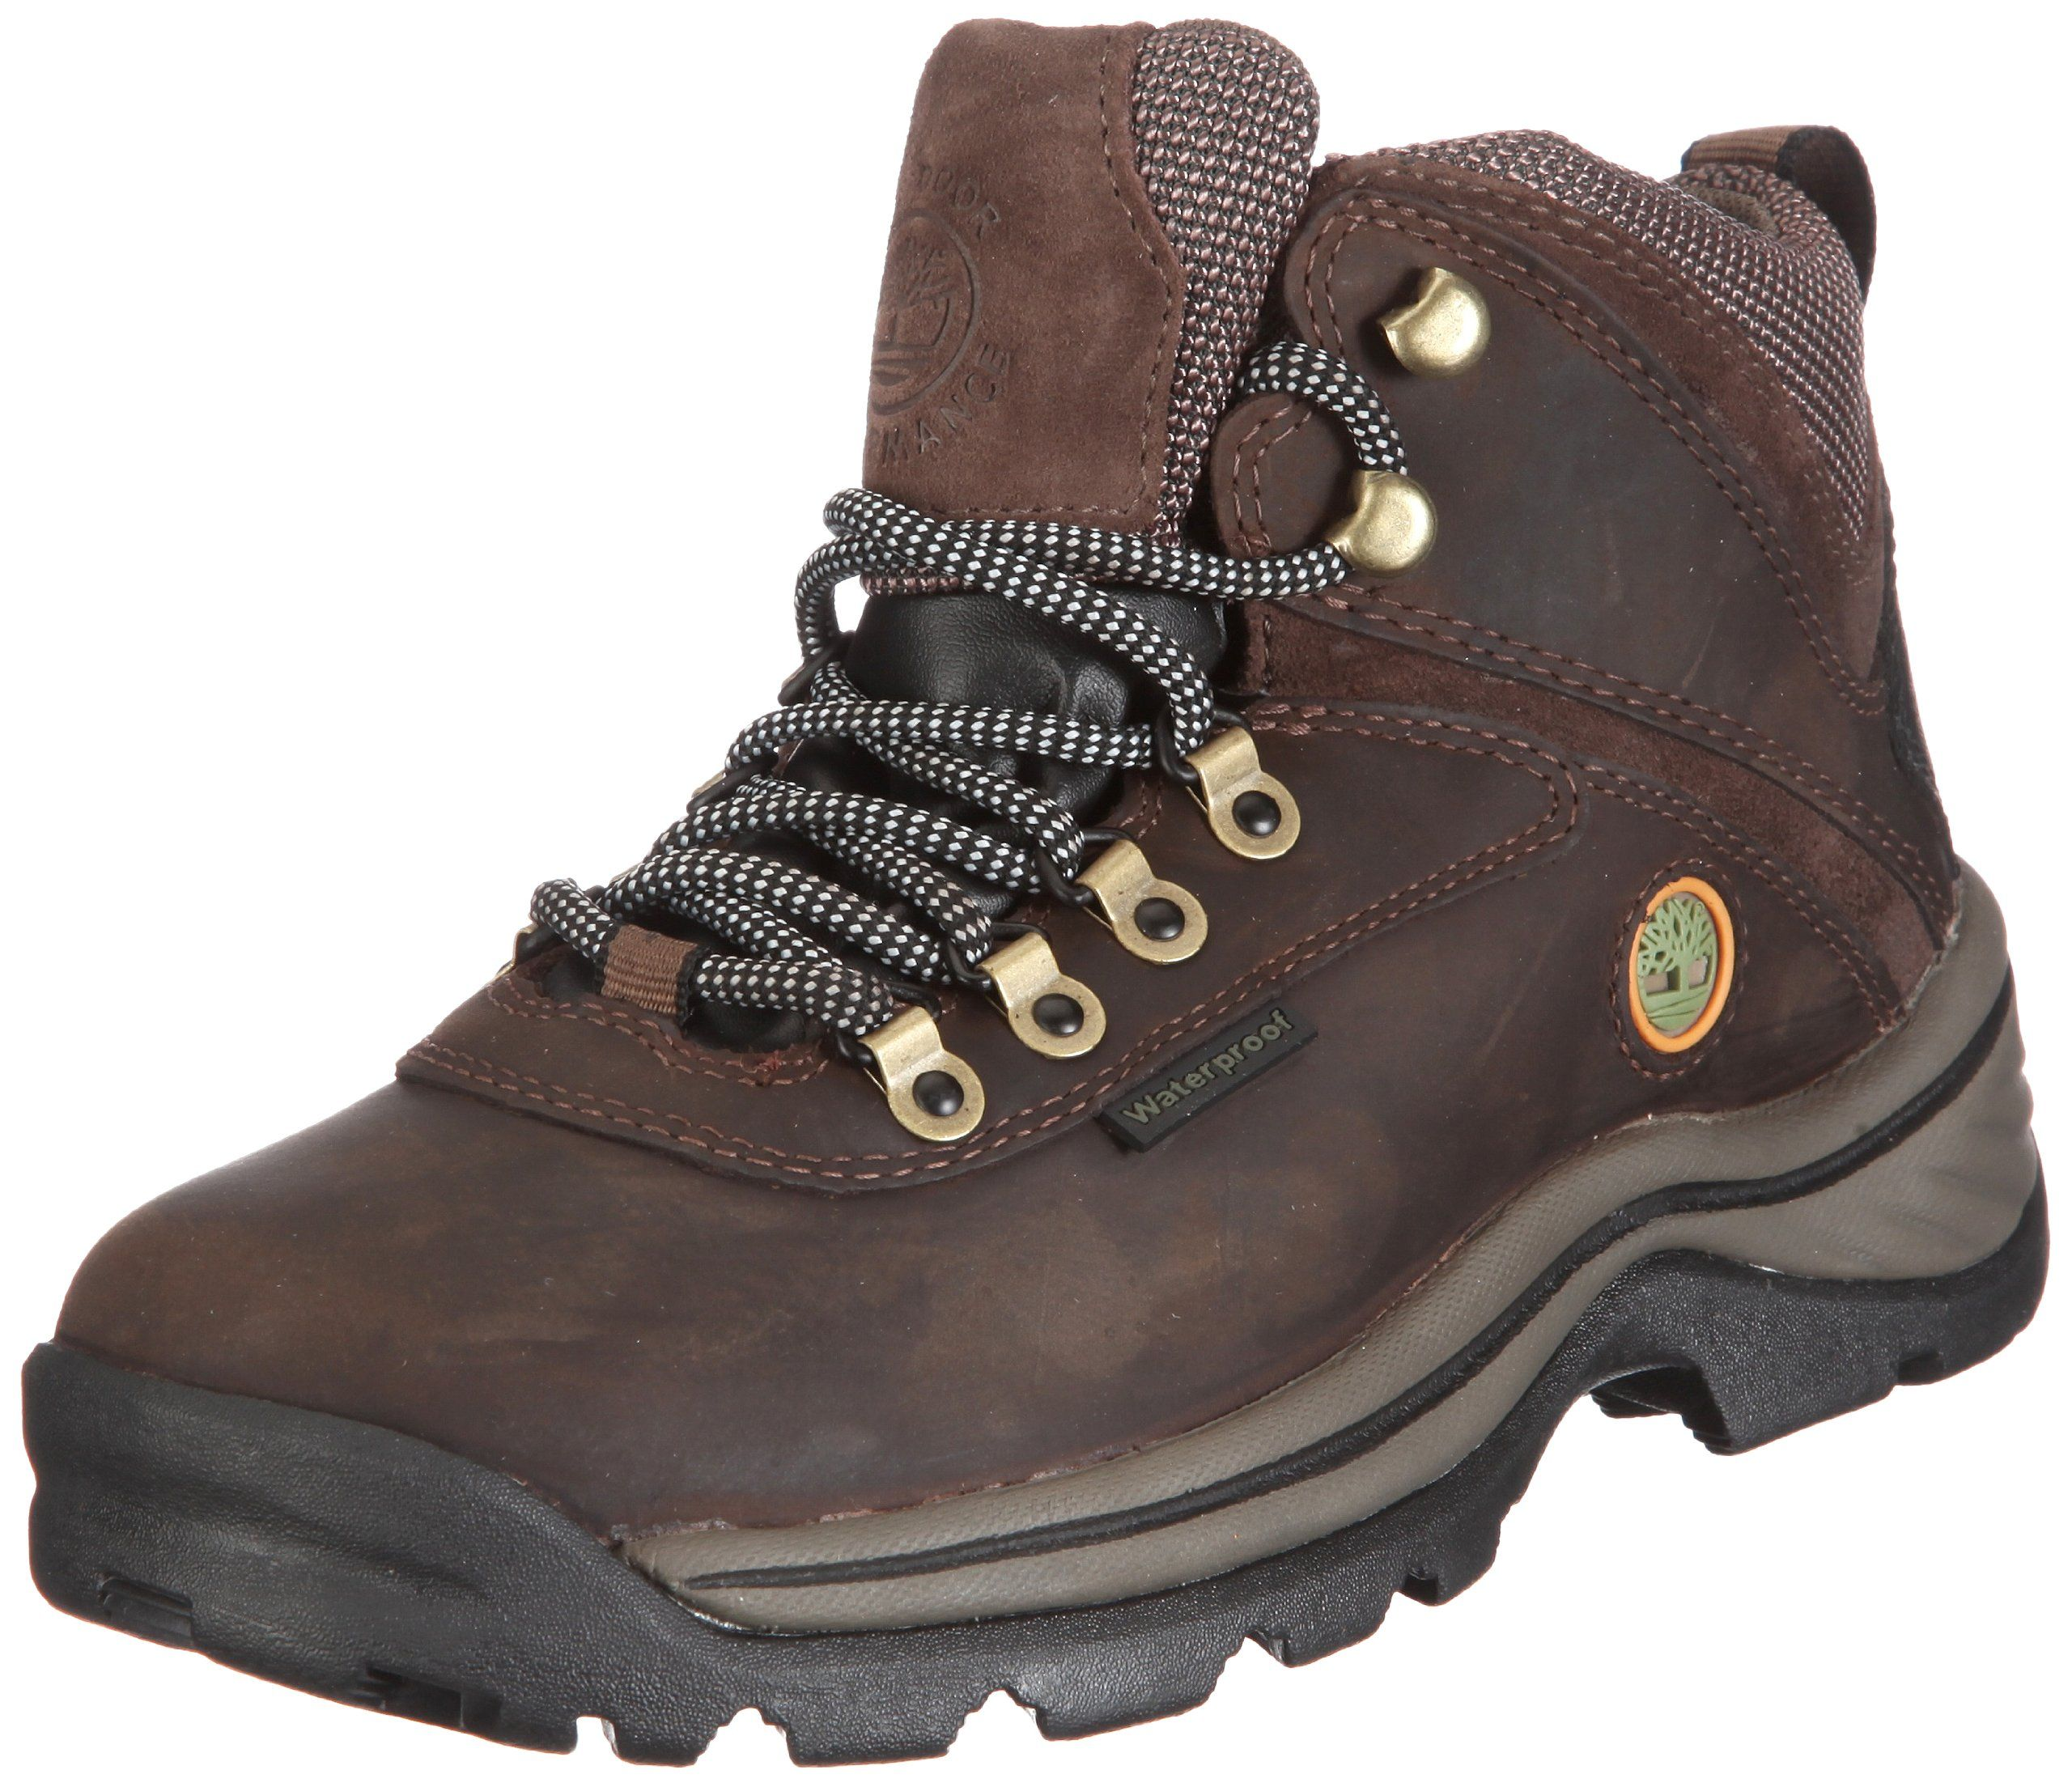 9a634116b40 Timberland Womens White Ledge Mid Ankle BootBrown7.5 W US >>> Want ...